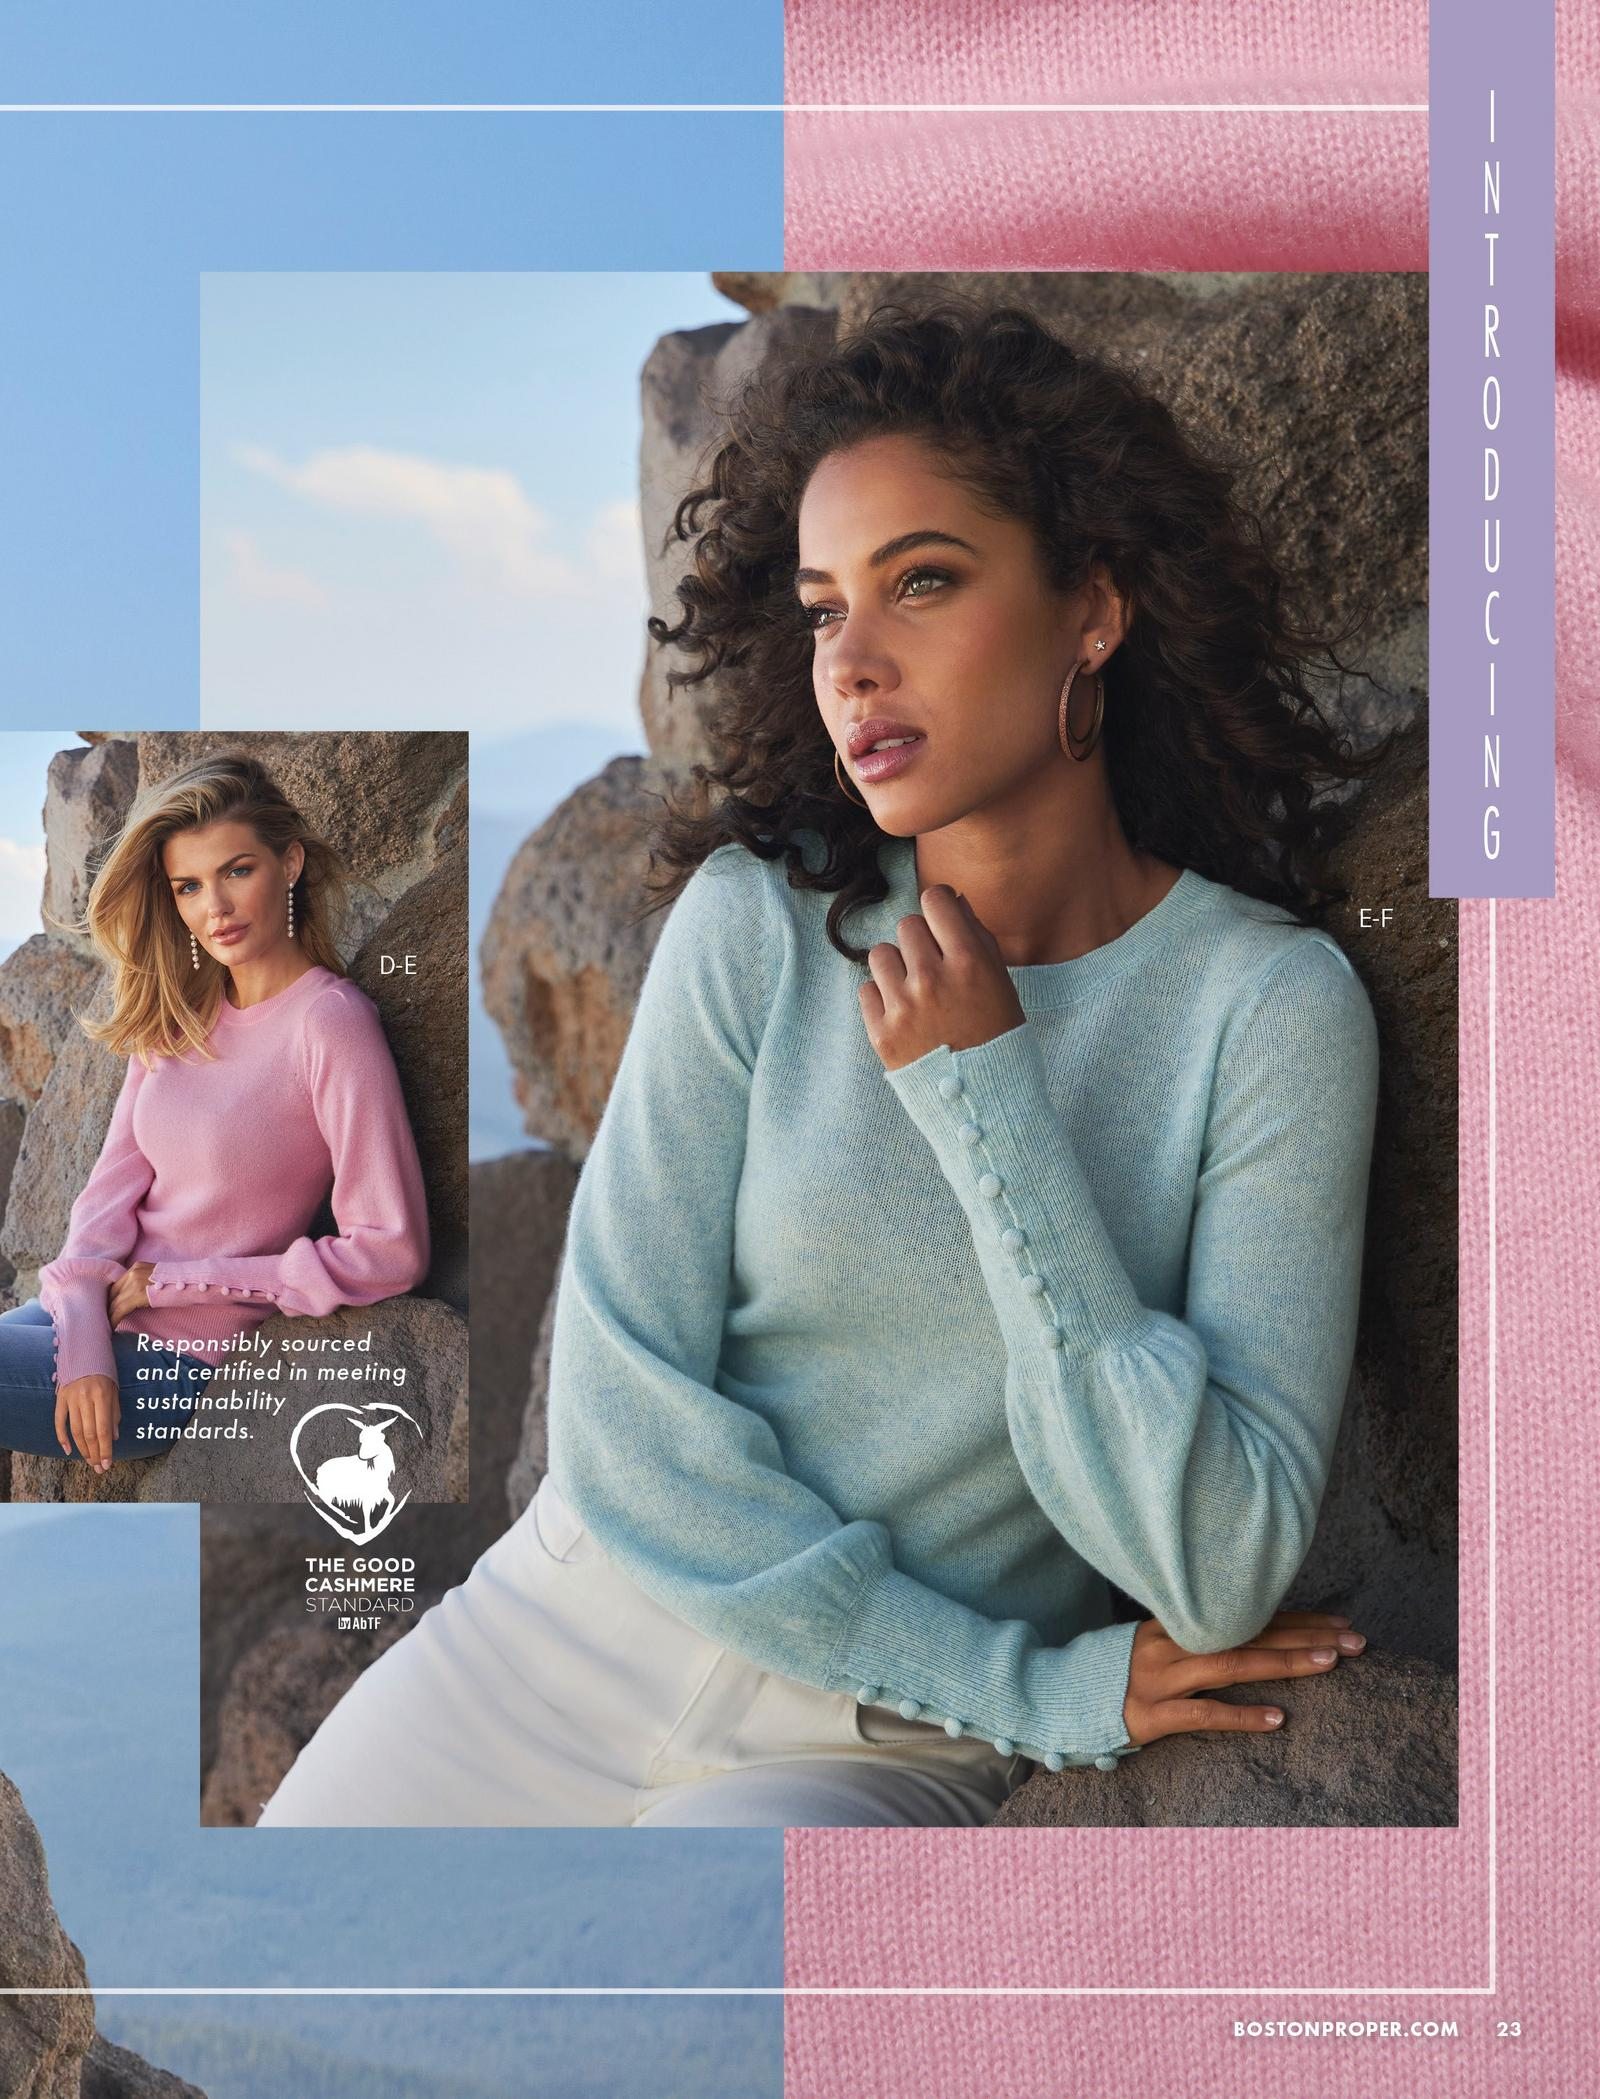 left model wearing a pink button-cuff puff-sleeve cashmere sweater, jeans, and pearl strand earrings. right model wearing the same sweater in blue and white jeans.